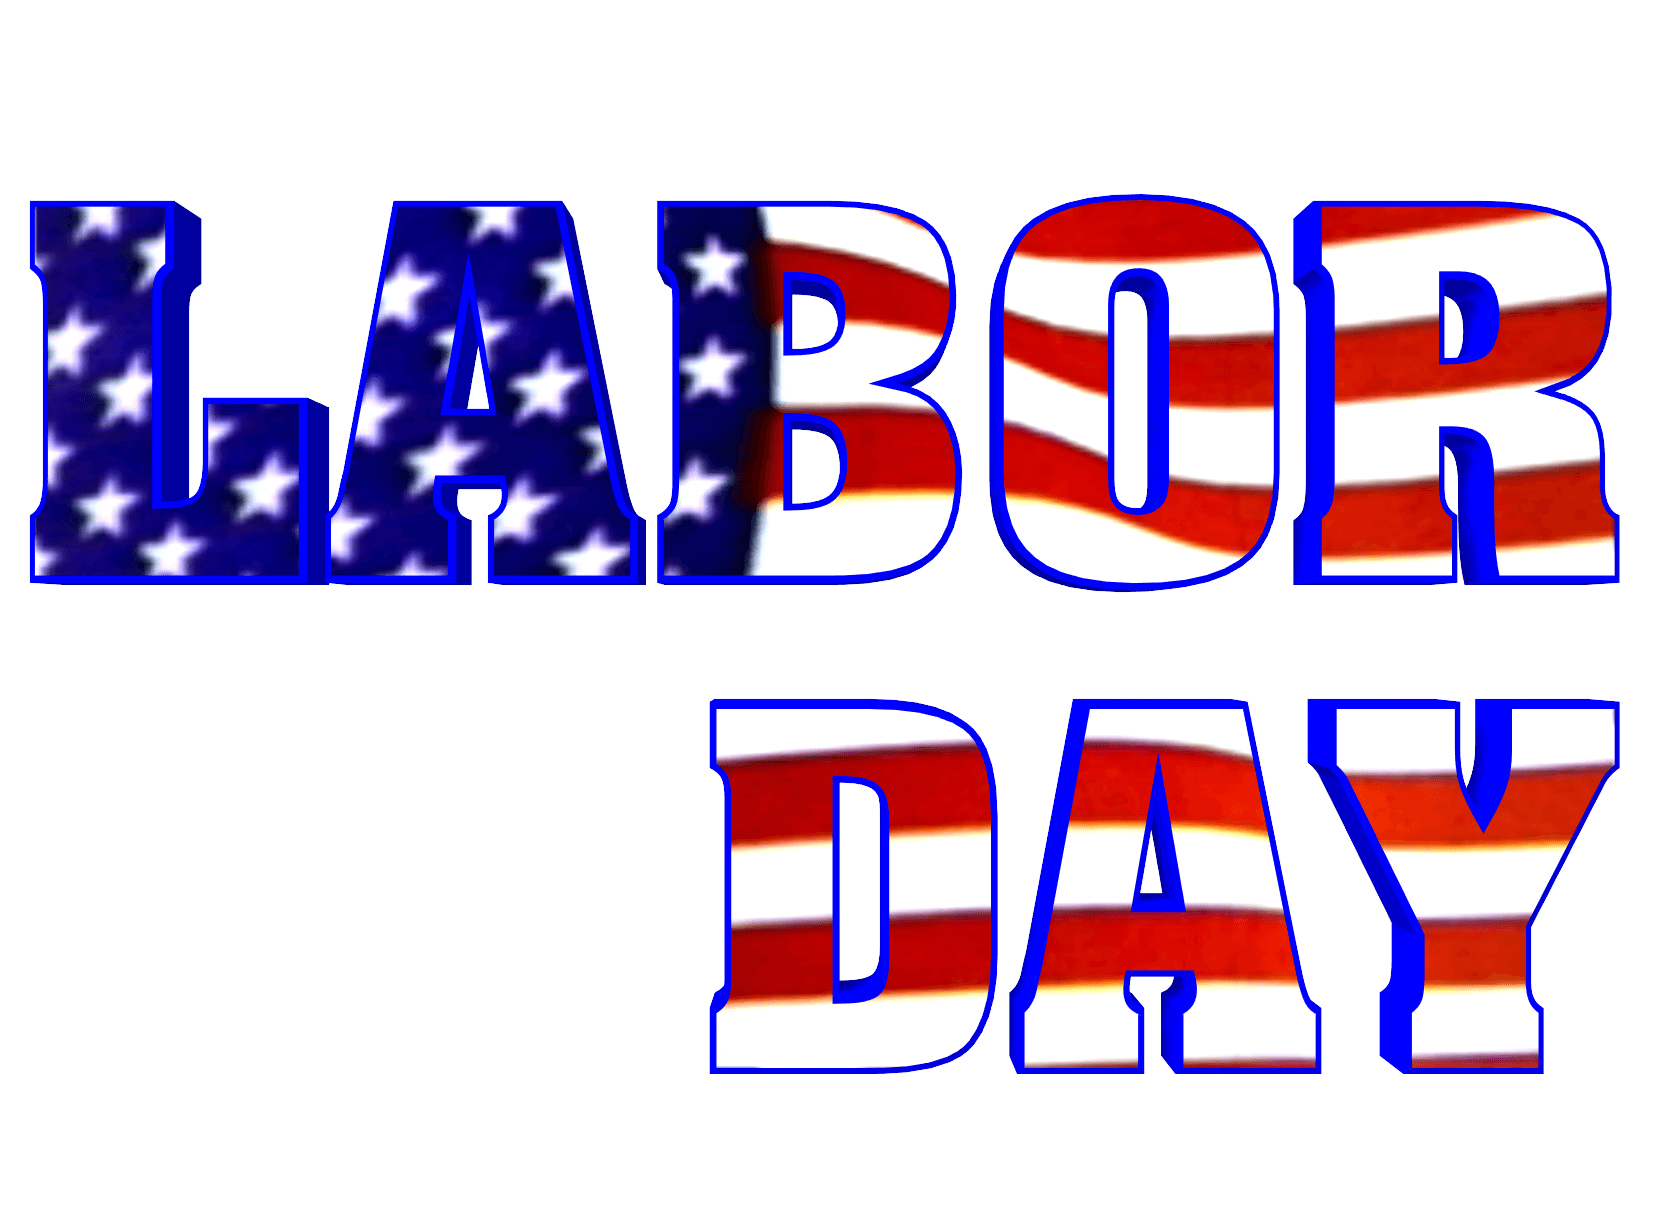 Grilling clipart labor day. Custom paper writing service